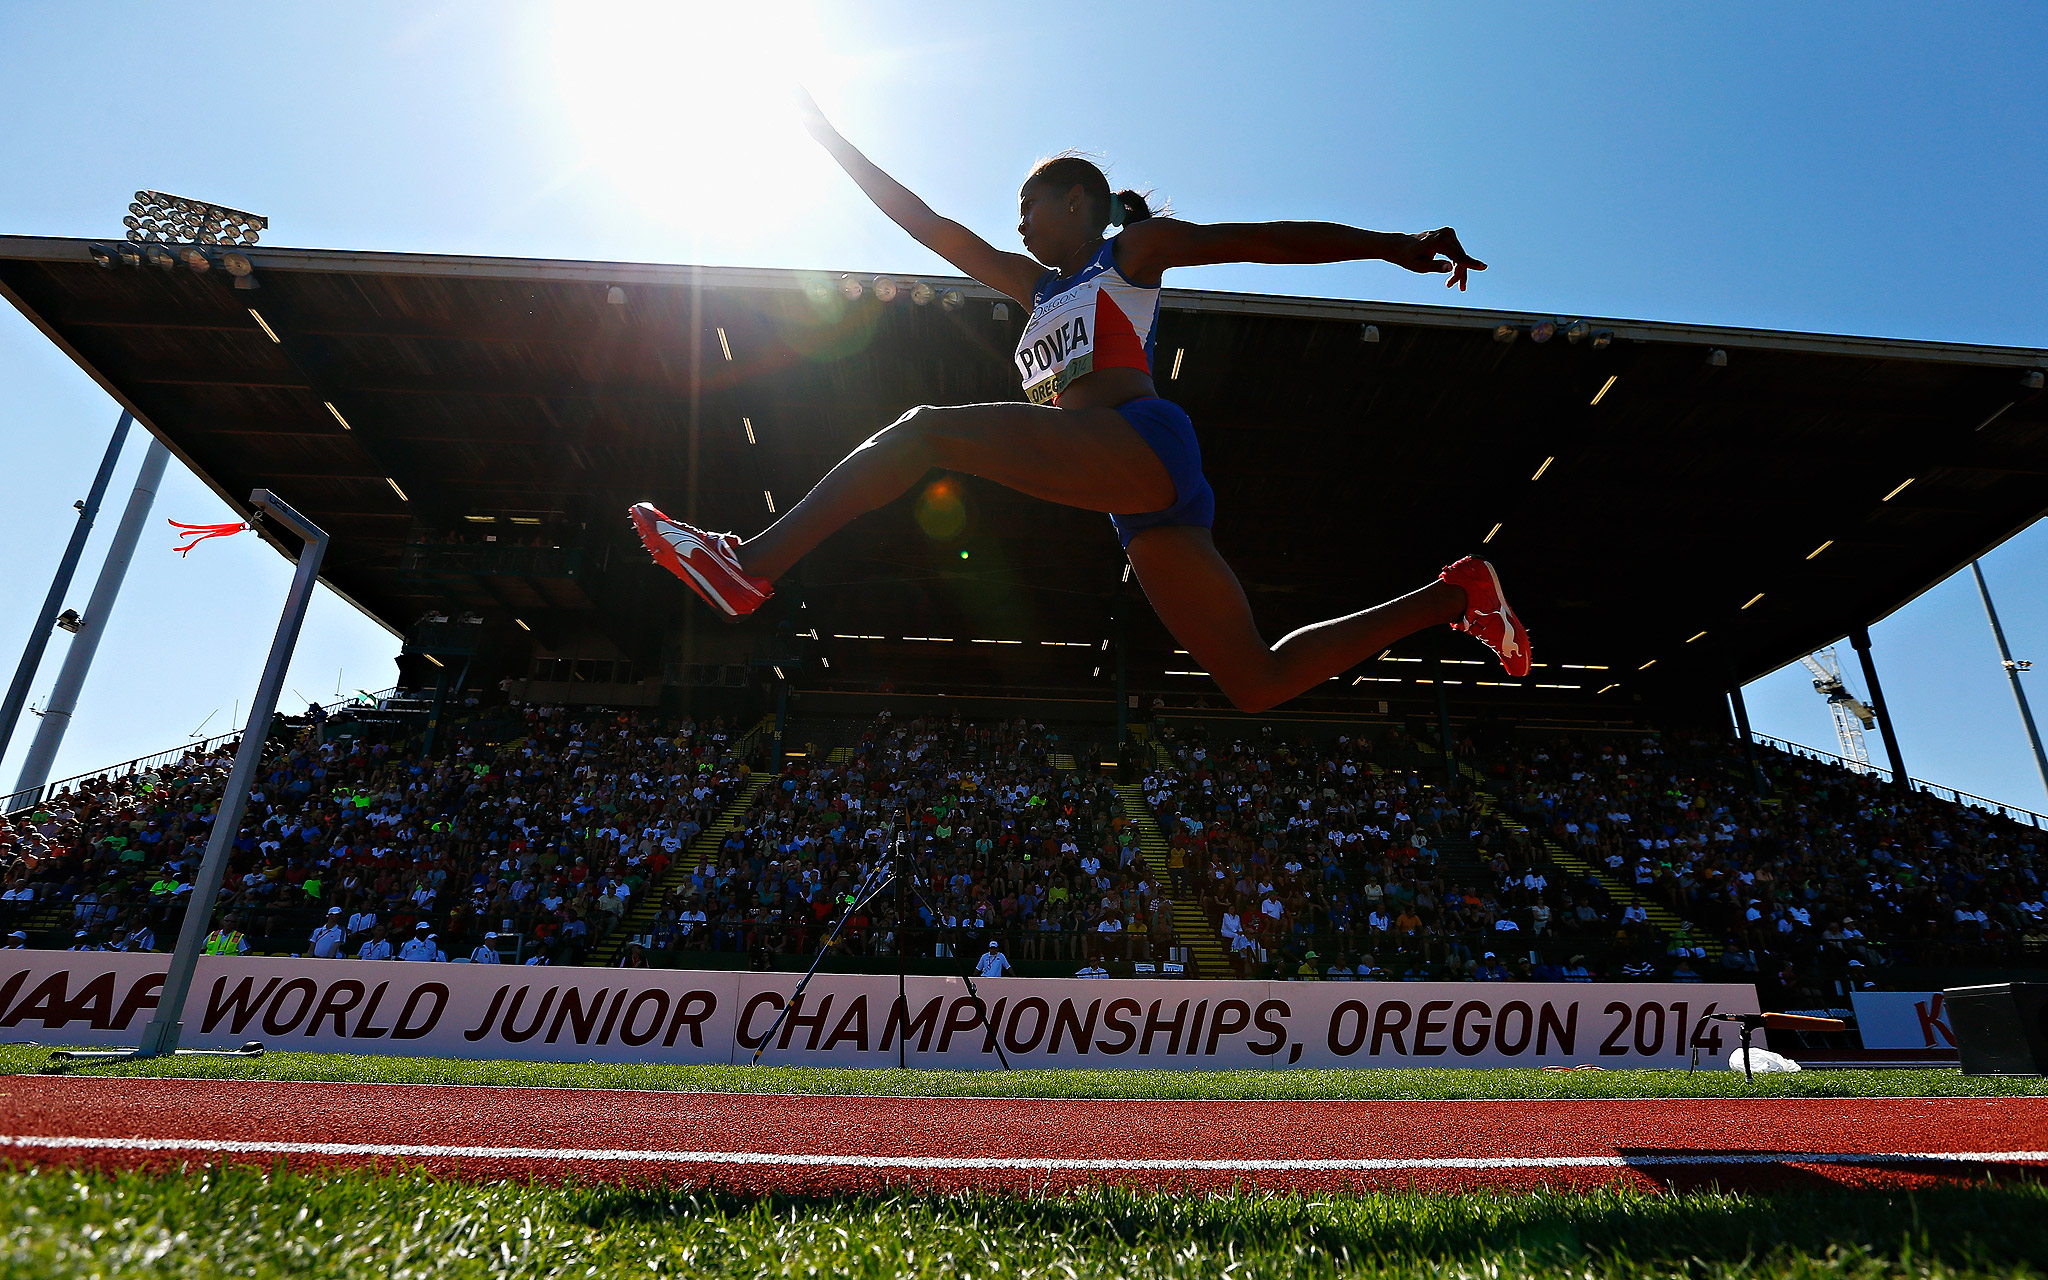 Cuba's Liadagmis Povea competes in the women's triple jump during Day 5 of the IAAF junior world championships at Hayward Field in Eugene, Oregon.